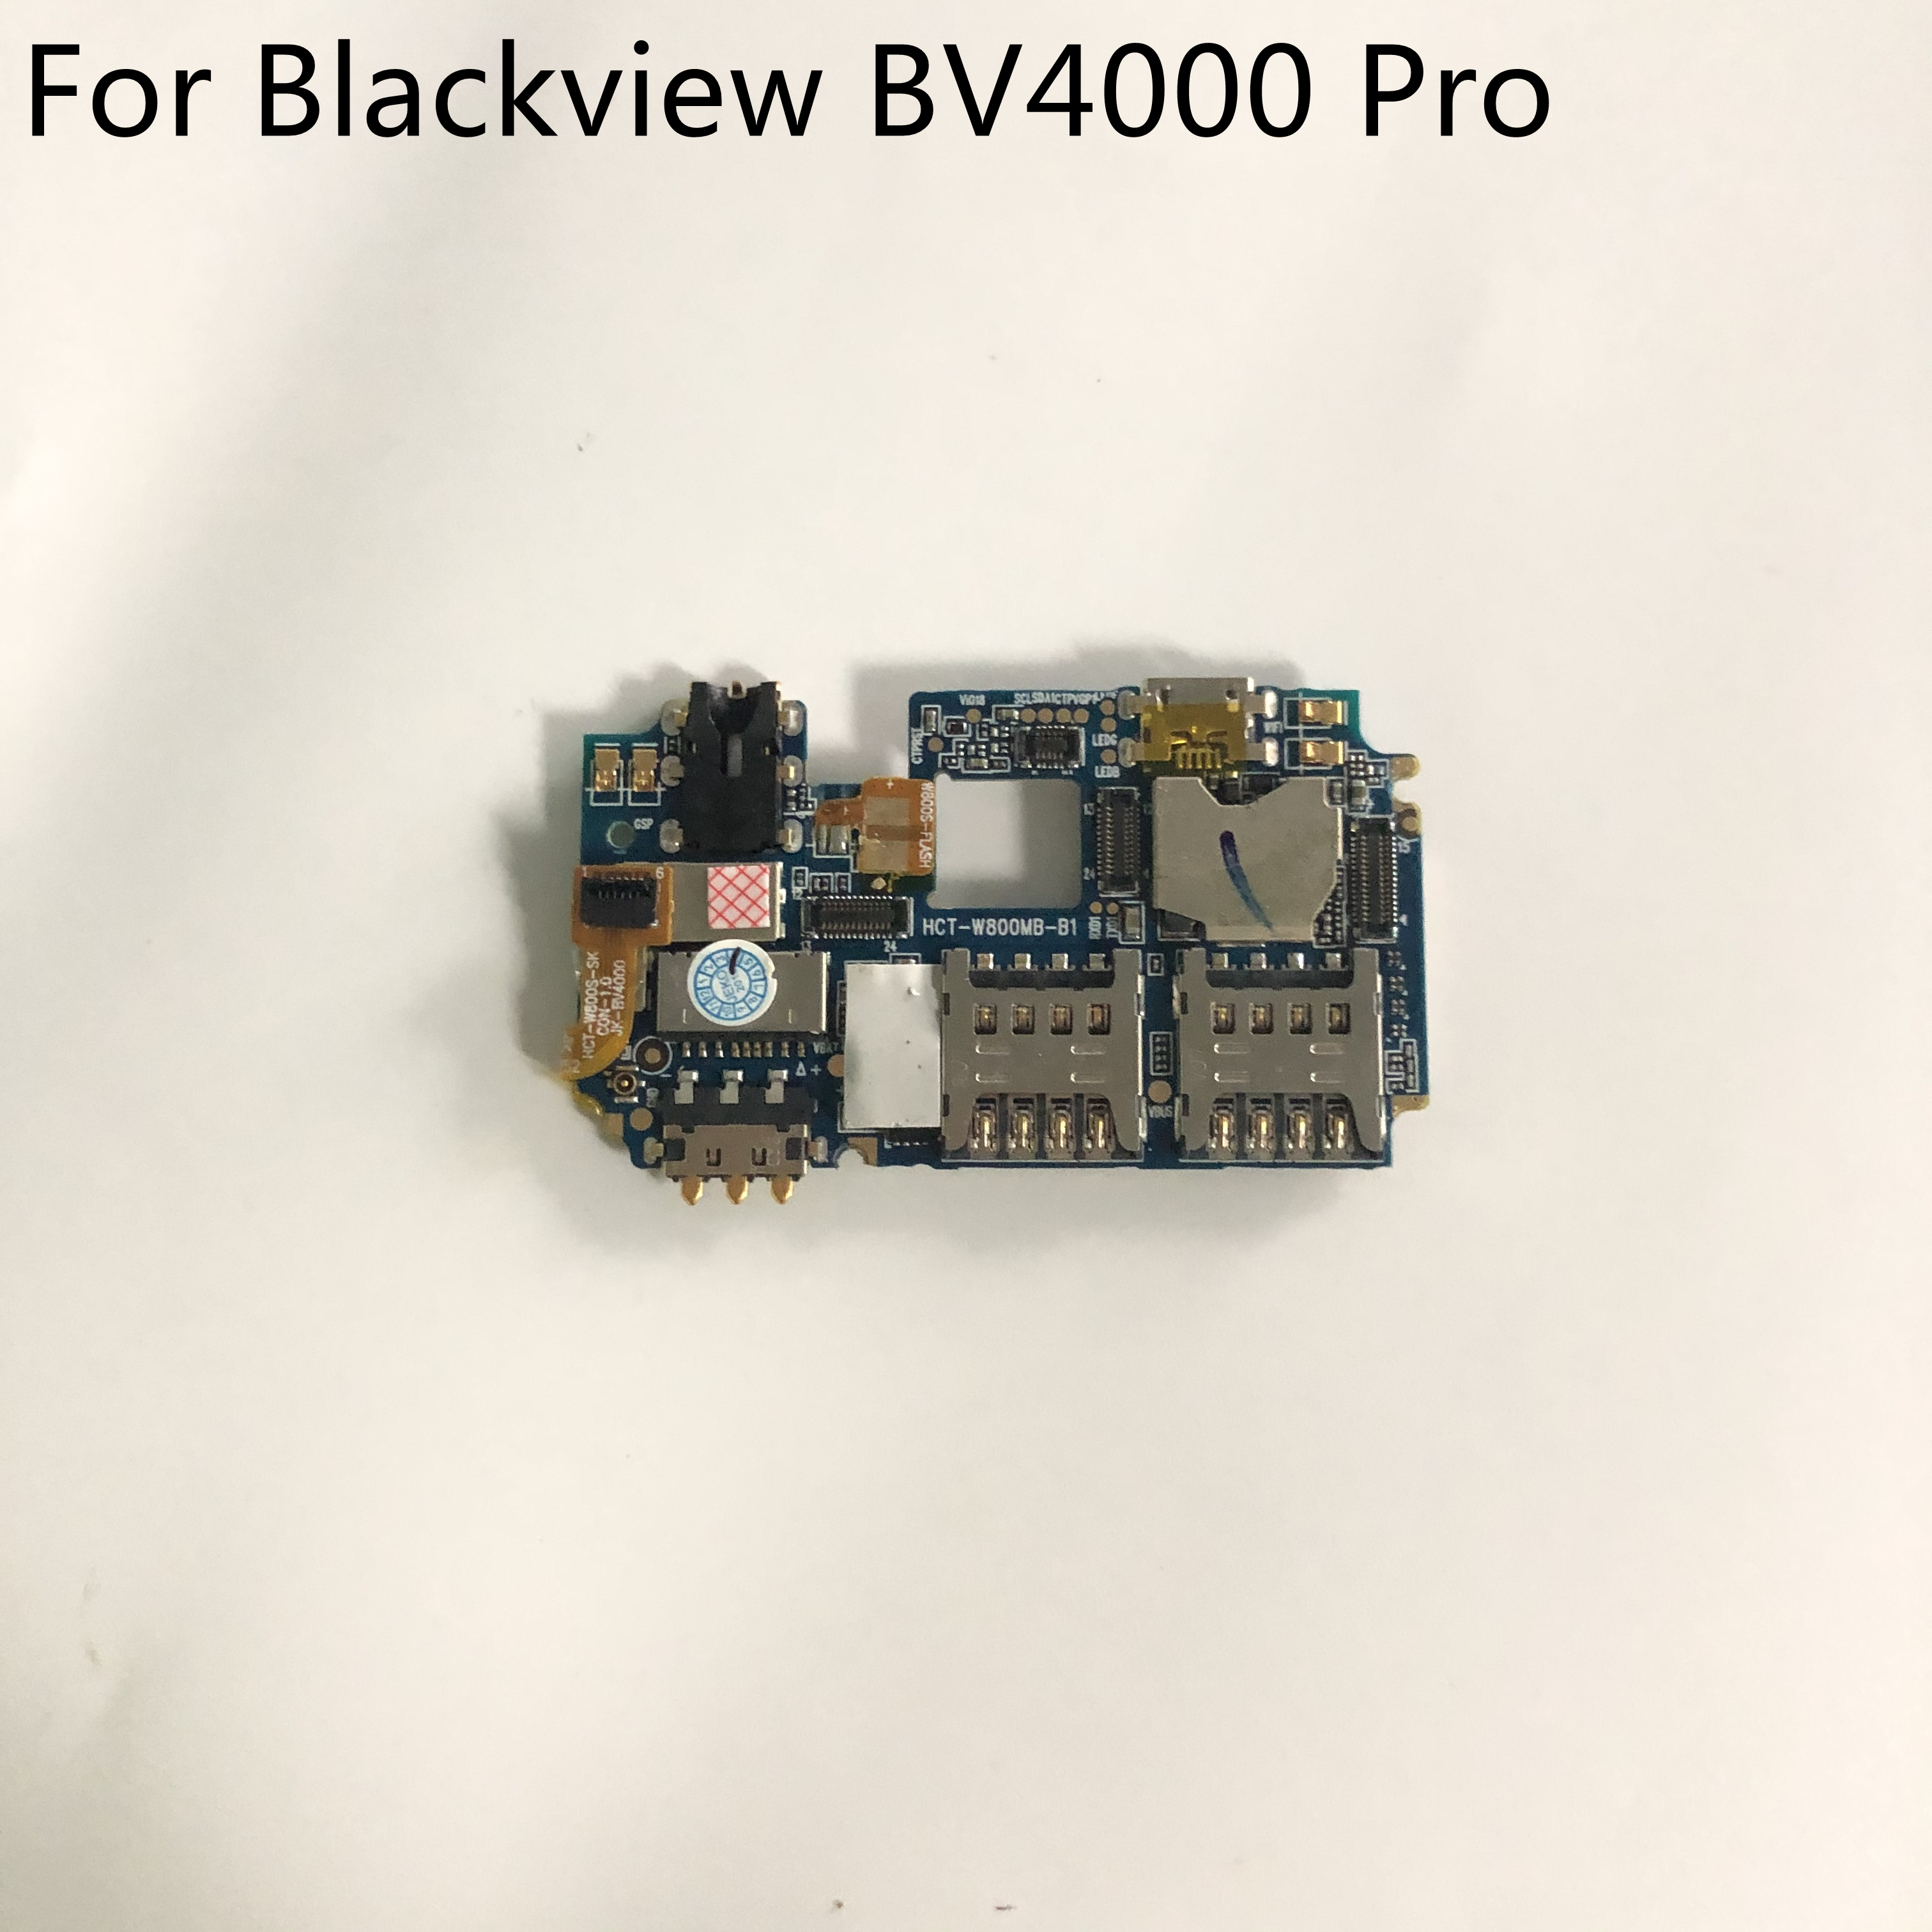 Blackview BV4000 PRO Used Mainboard 2G RAM+16G ROM Motherboard For Blackview BV4000 PRO 6580A Quad-Core 4.7 Smartphone